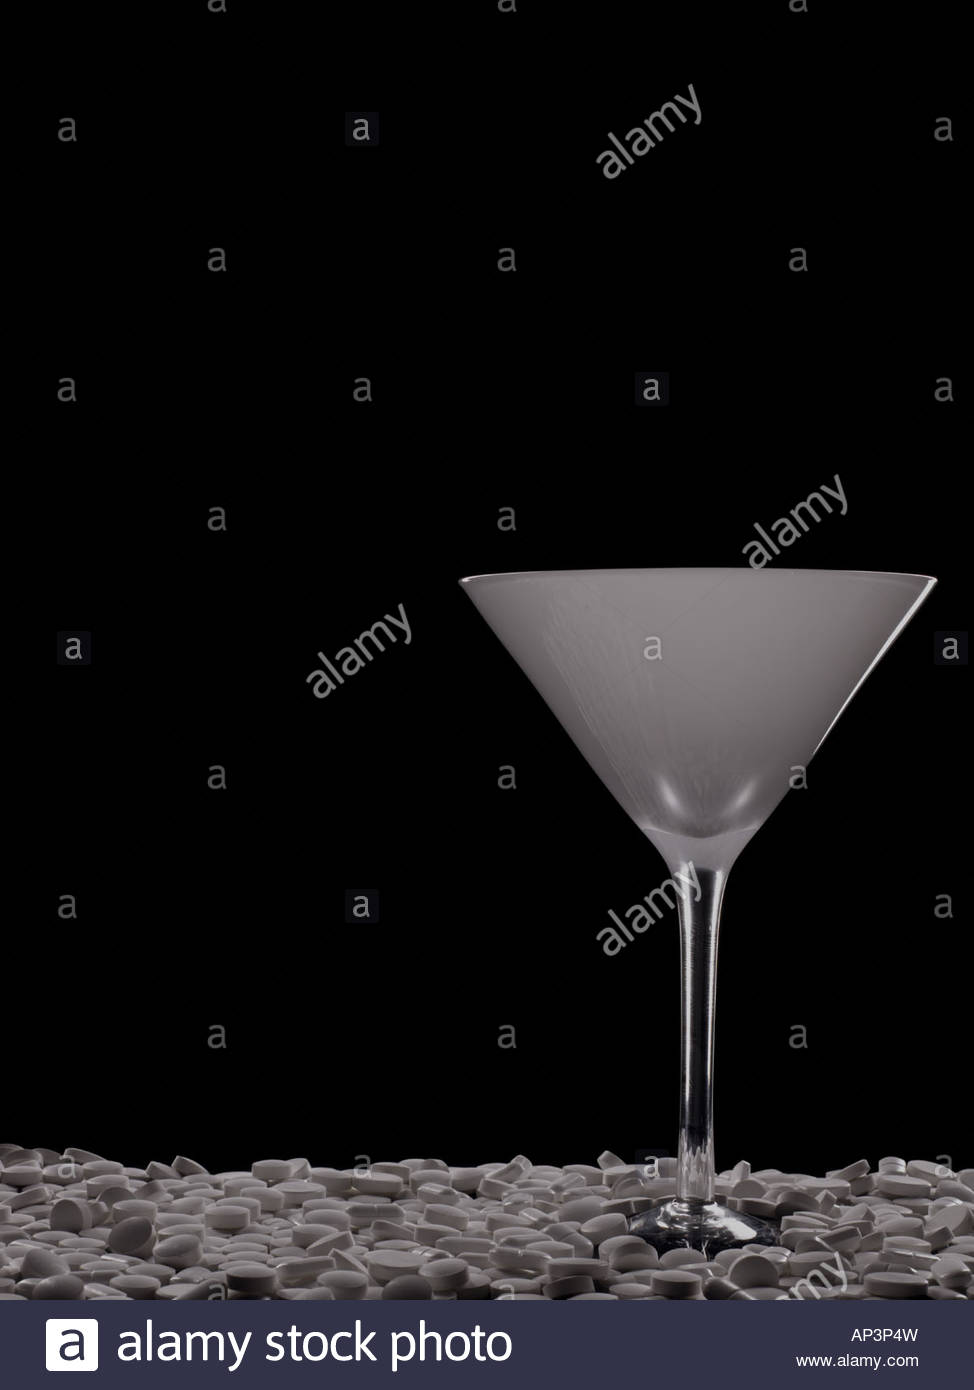 Cocktail glass and tablets - Stock Image